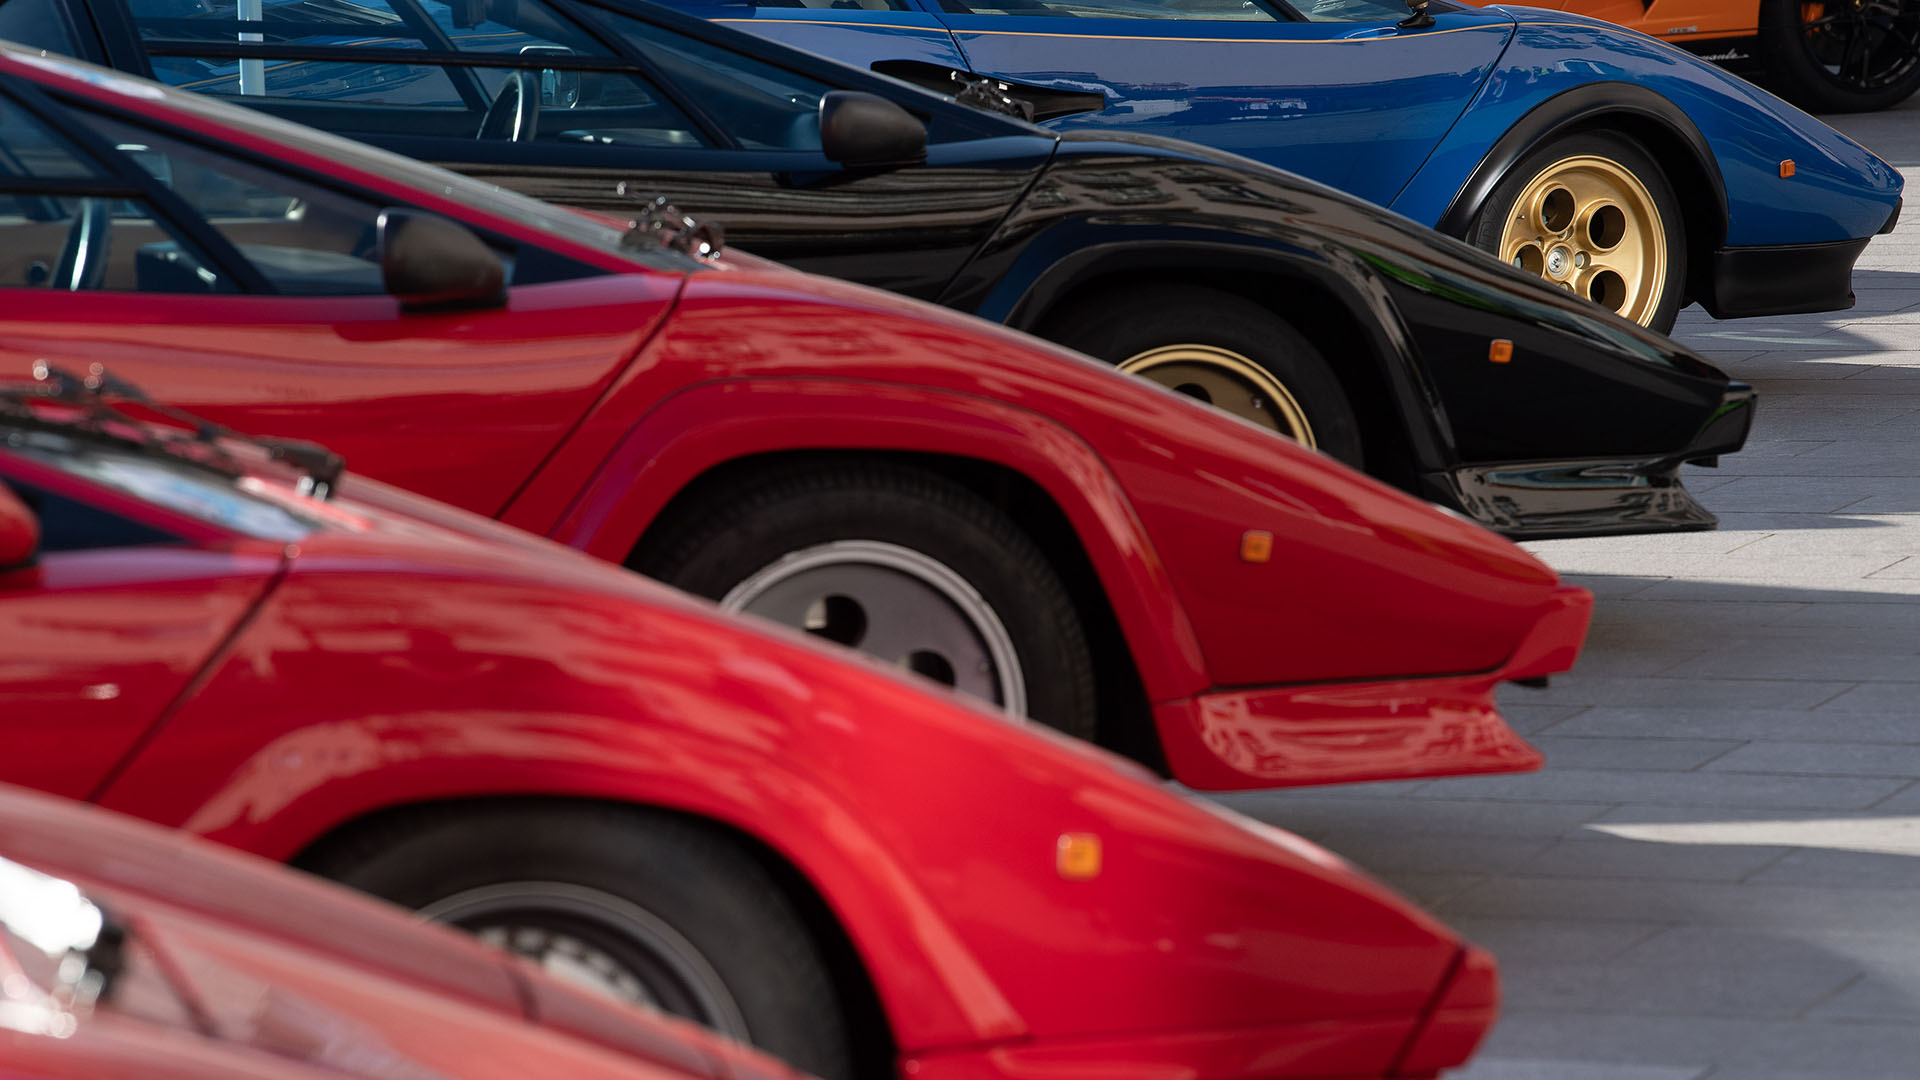 A variety of Lamborghini Countachs parked together